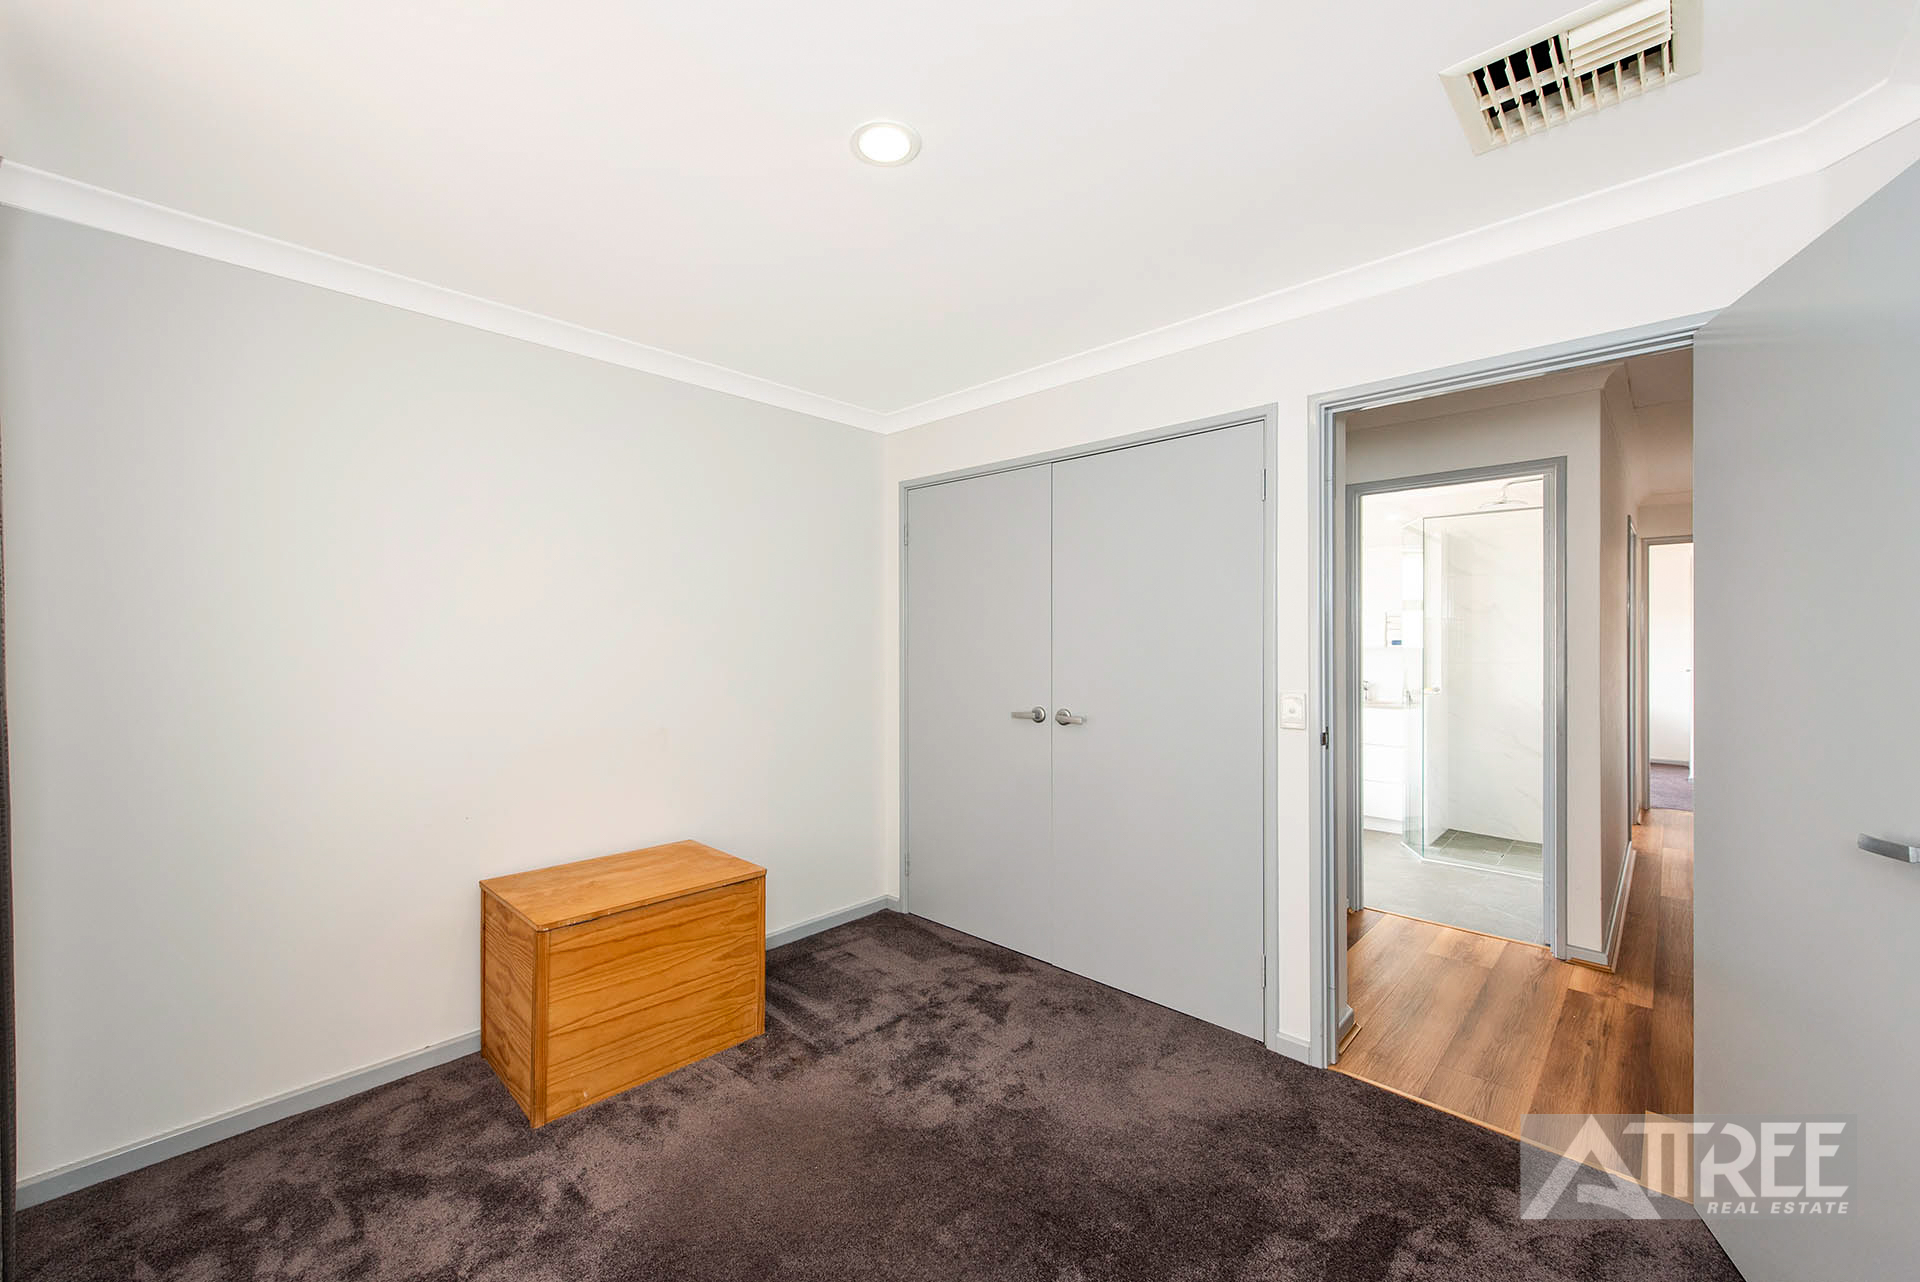 Property for sale in CANNING VALE, 44 Central Park Avenue : Attree Real Estate